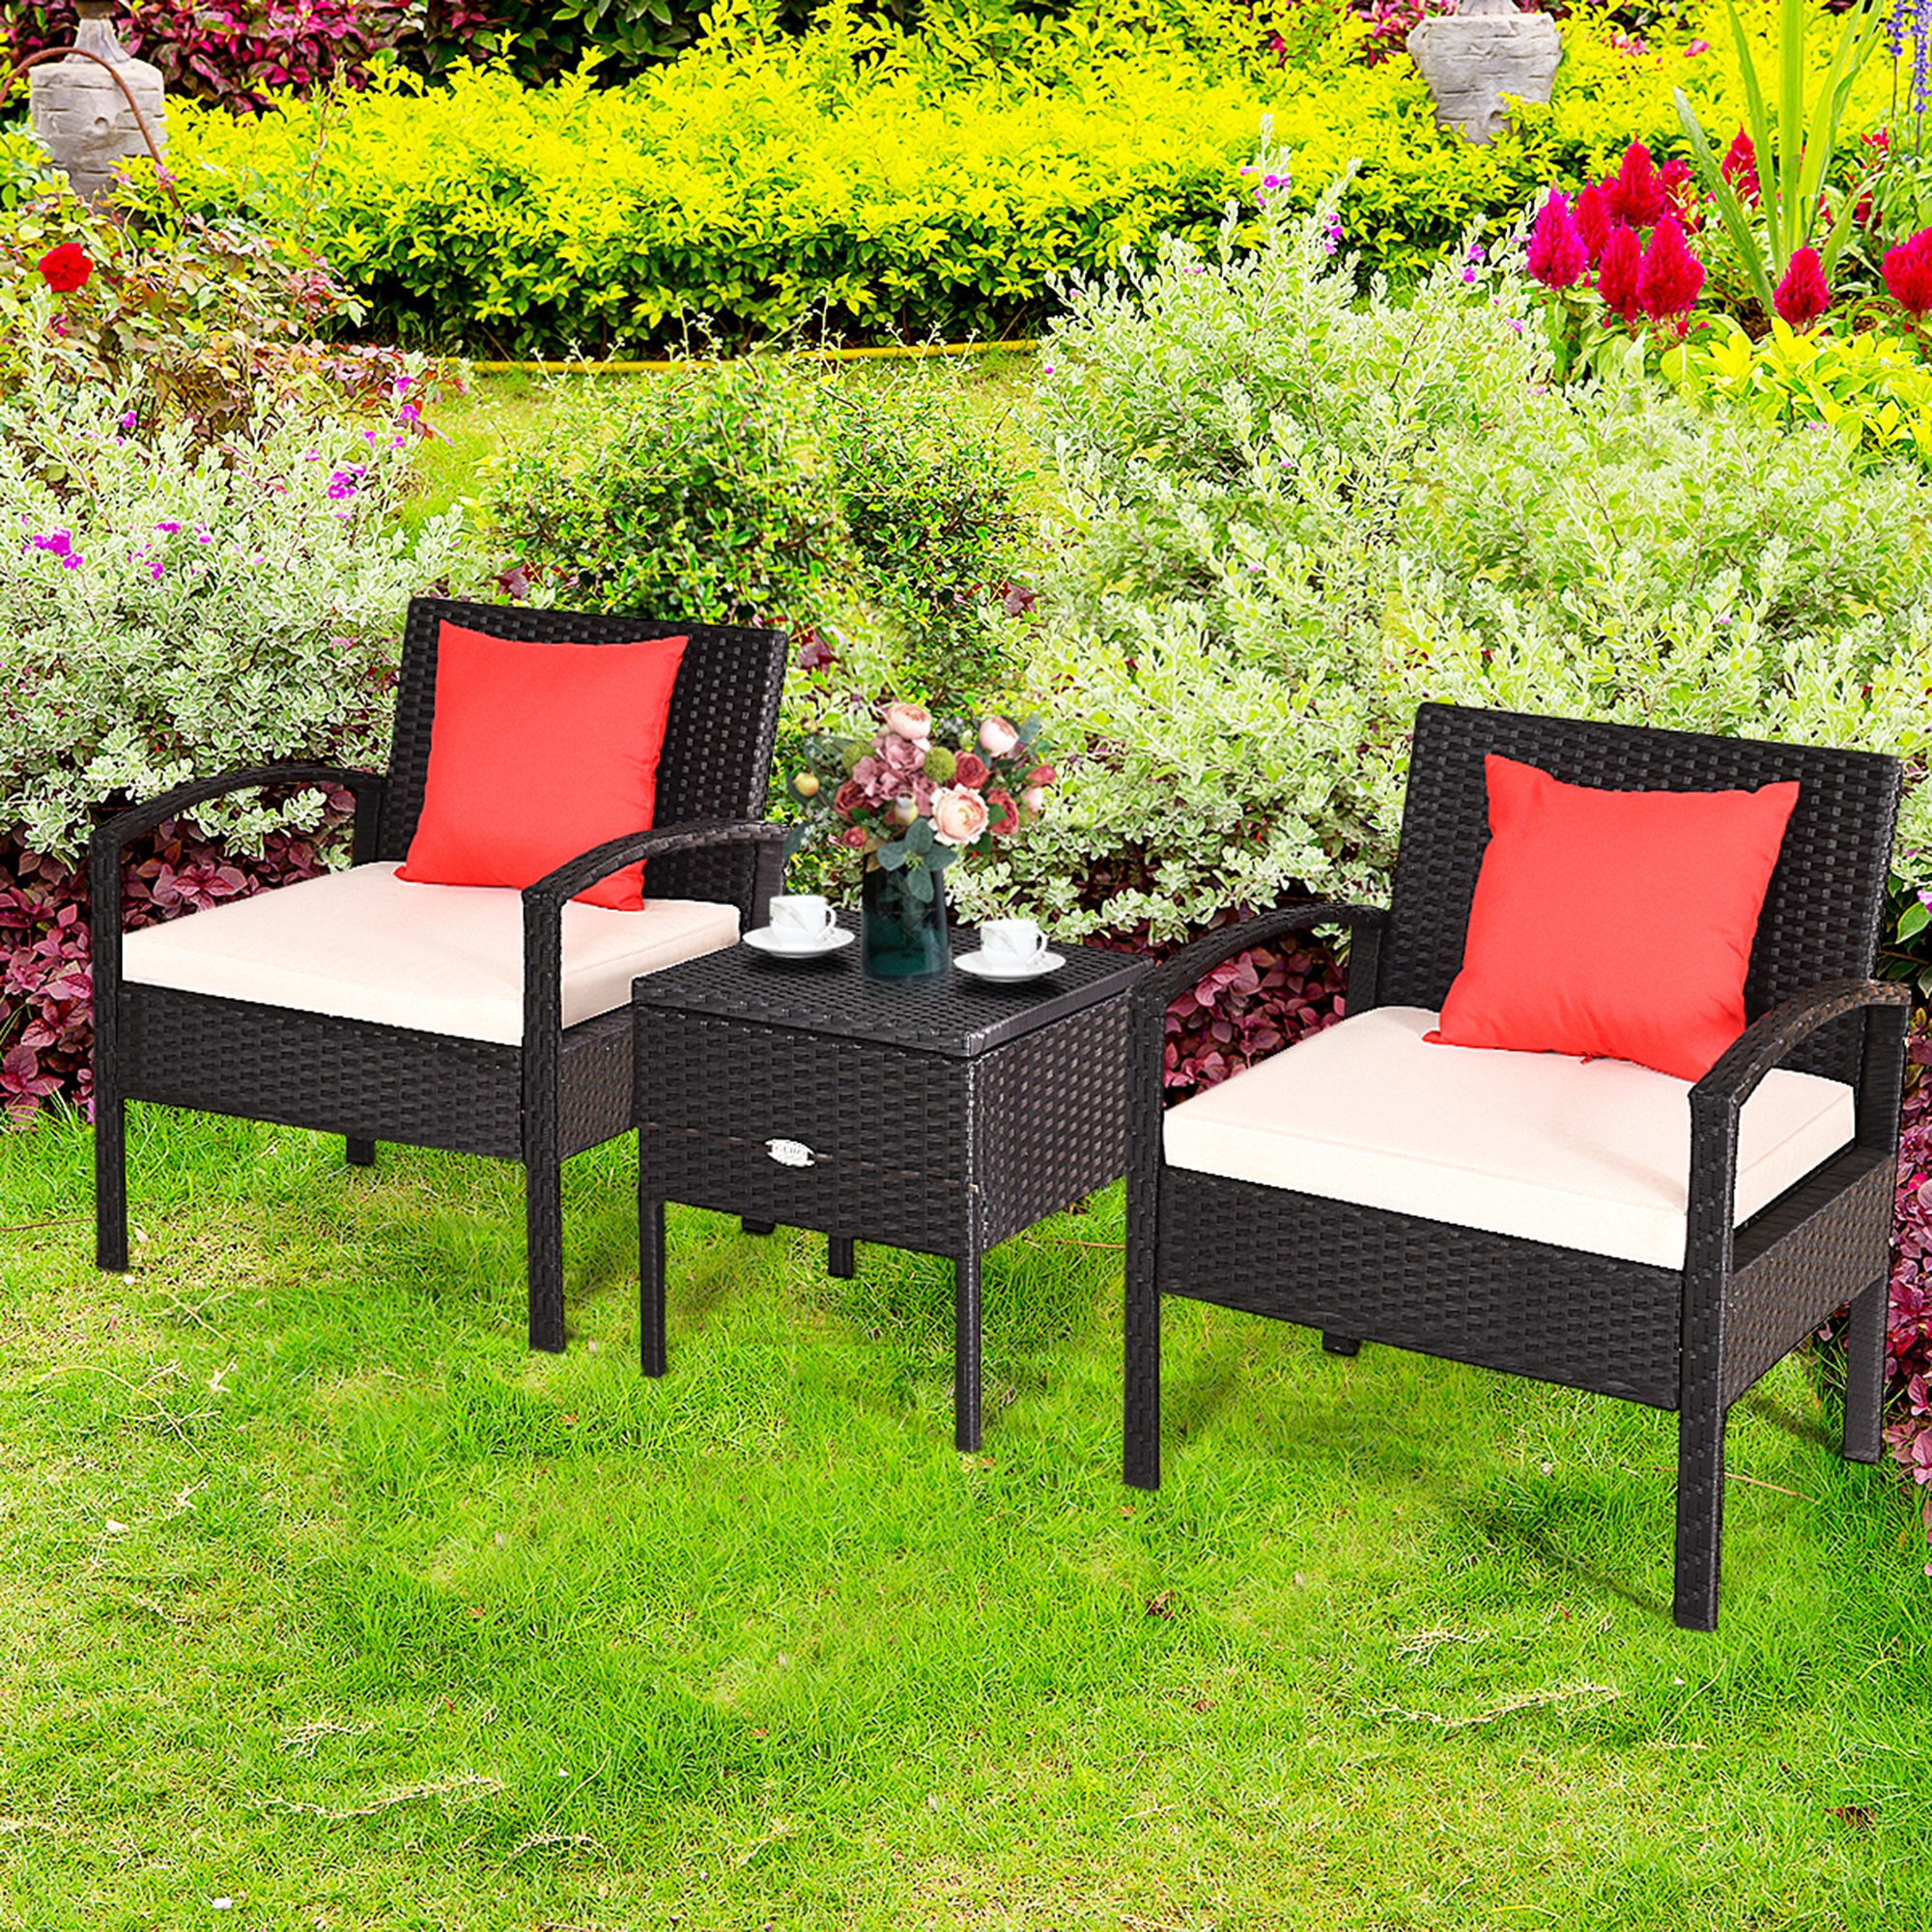 Gymax 3pcs Rattan Patio Conversation Set Outdoor Furniture Set W - Garden Furniture Clearance Mercure Hotel